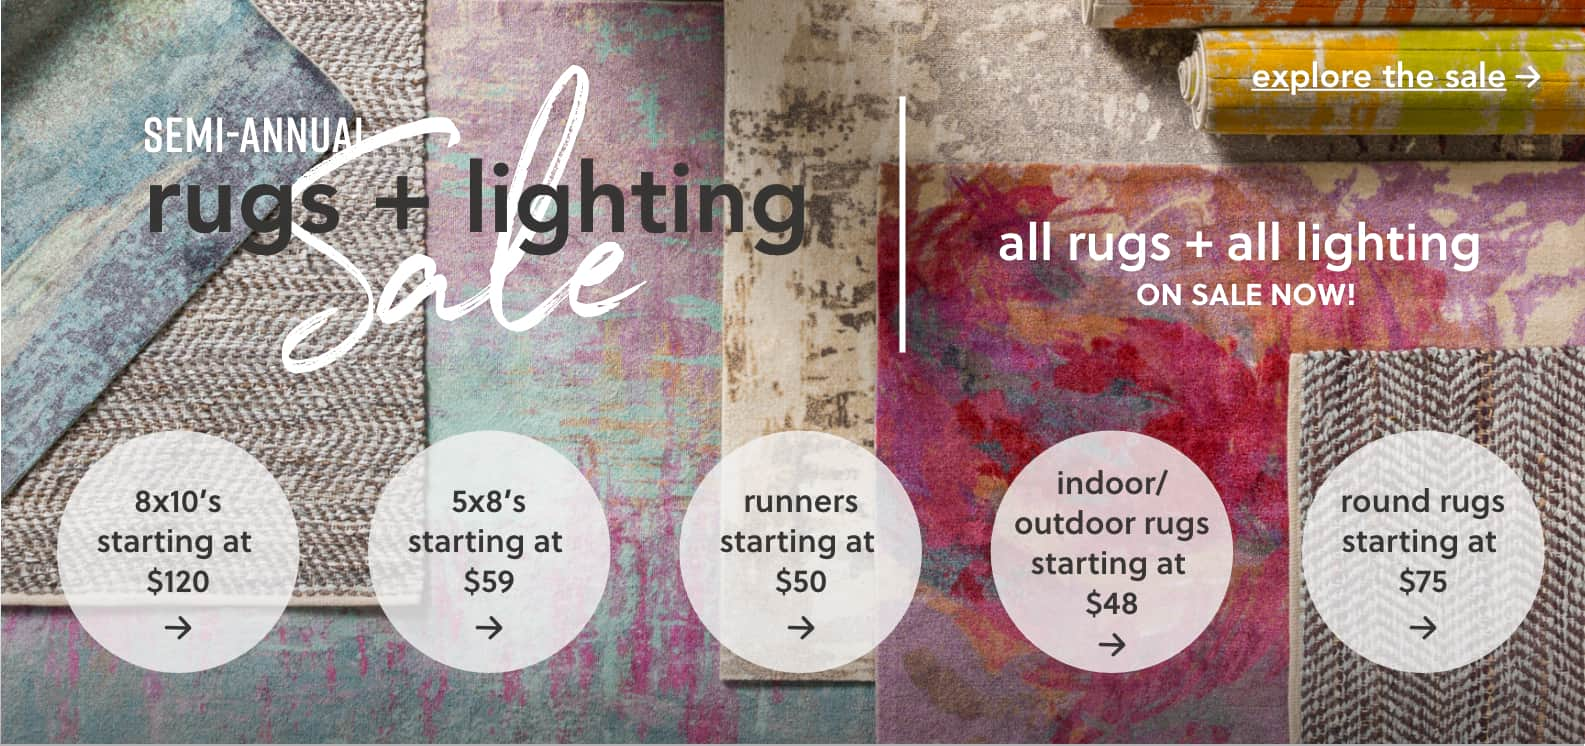 Semi-Annual Rugs & Lighting Sale